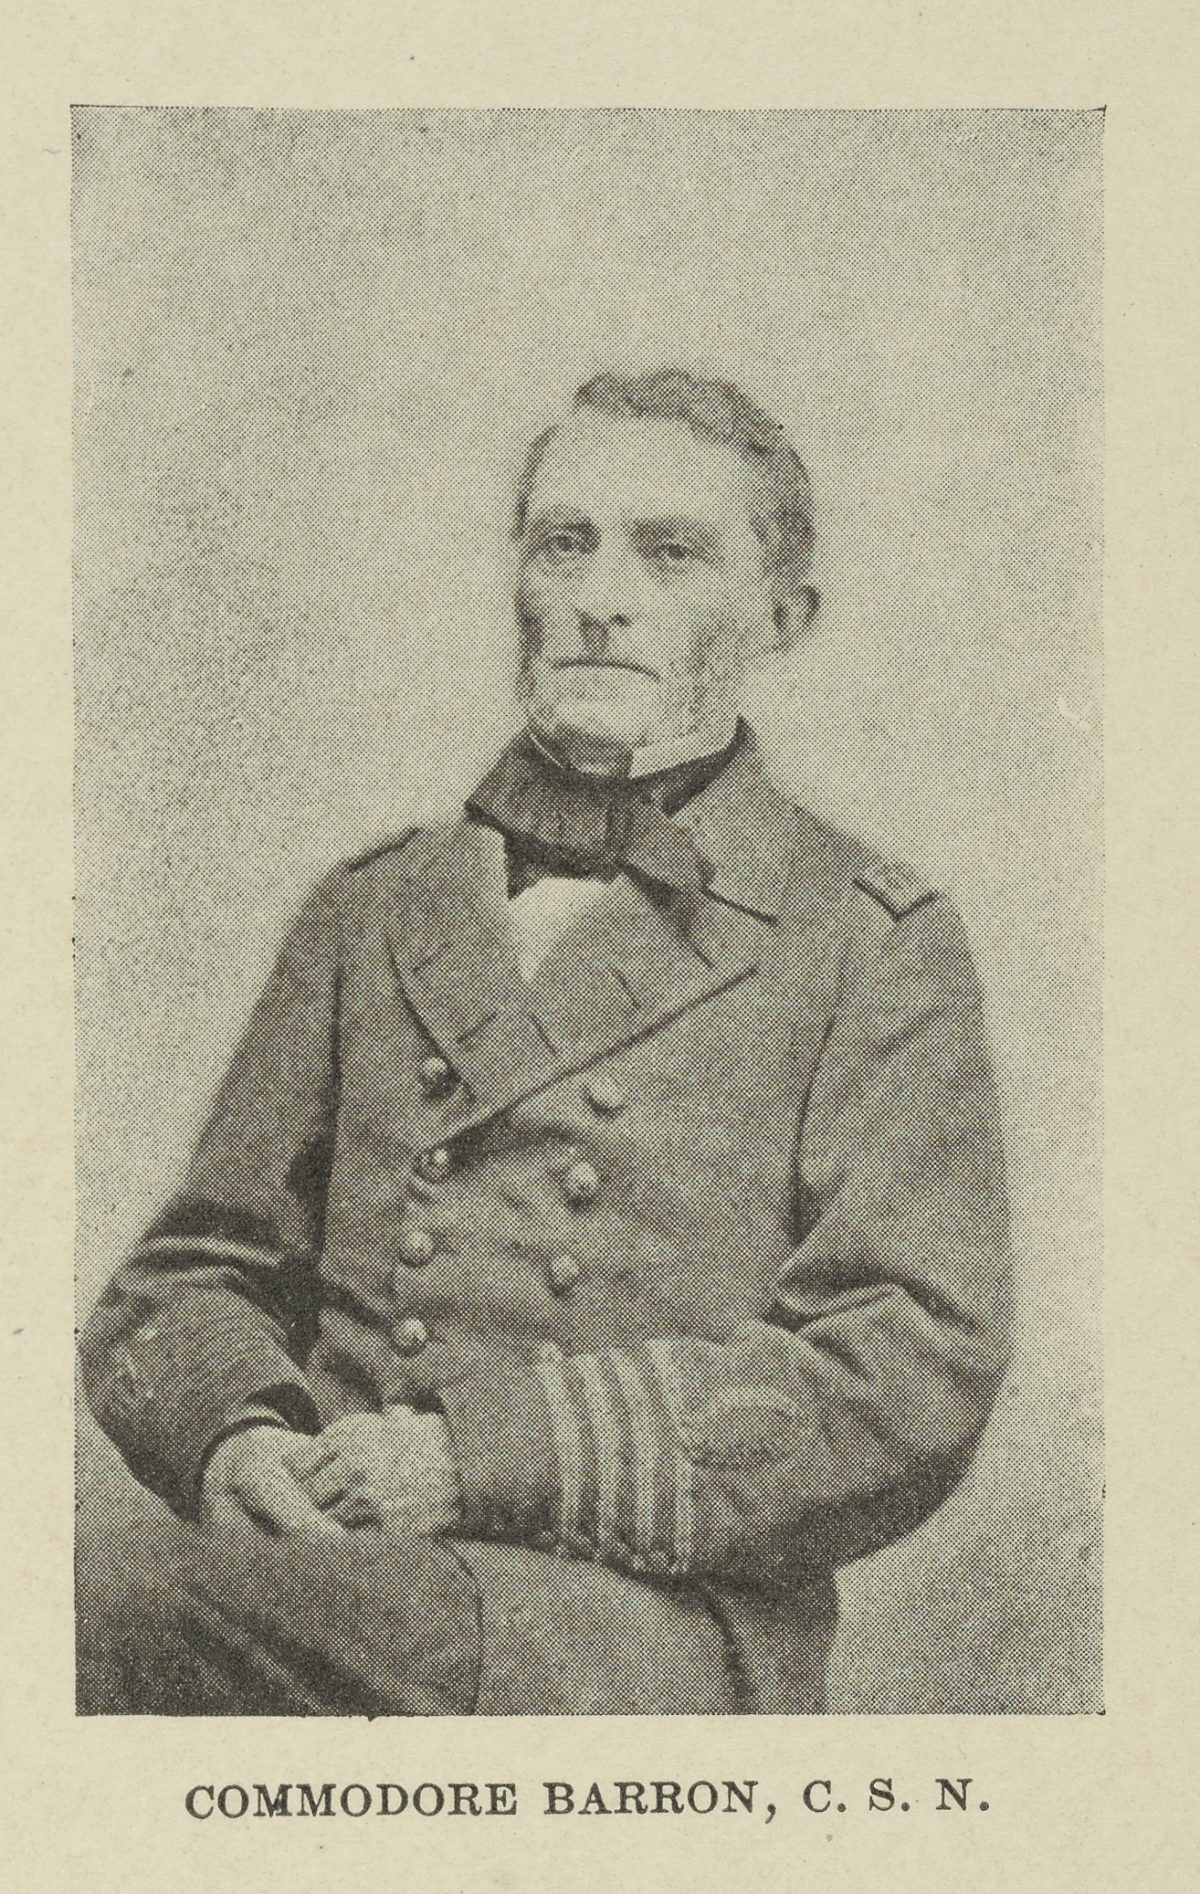 Commodore Samuel Barron of the Confederate States Navy